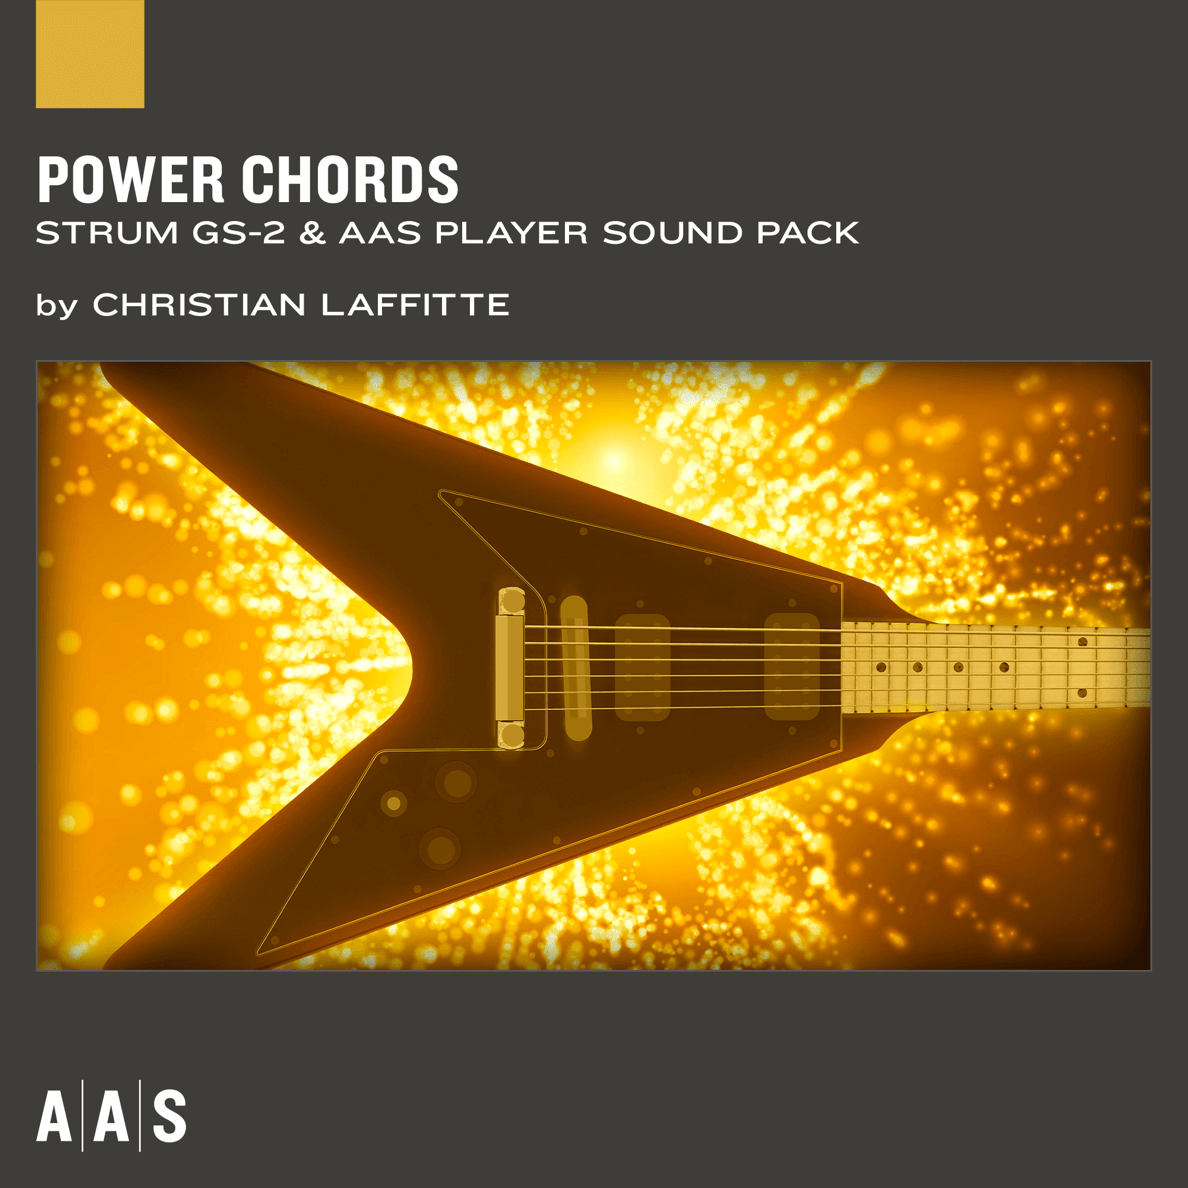 AAS Sound Packs: Power Chords AAS Sound Packs PluginFox